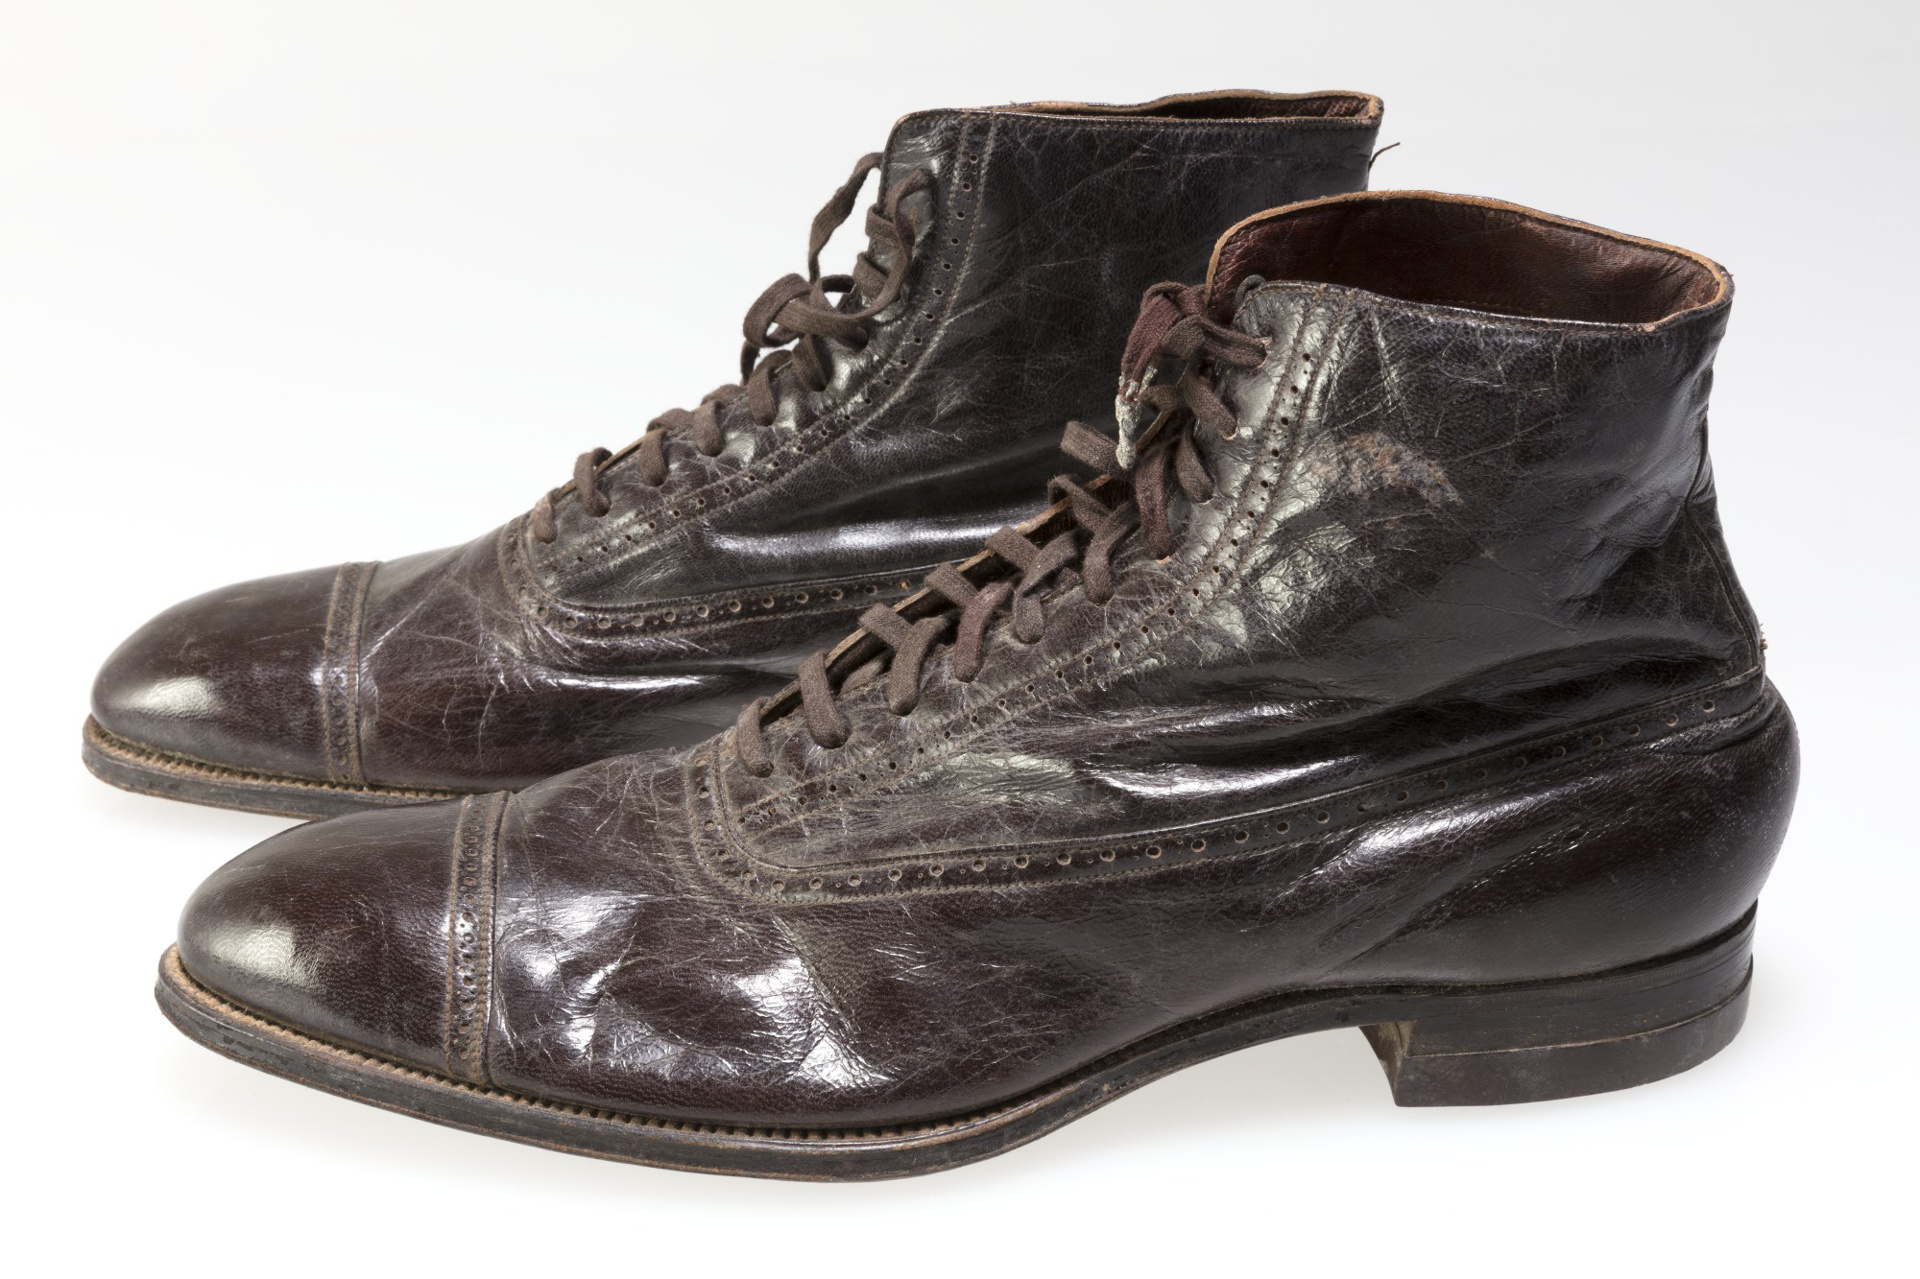 bf74b98fc8c Shoes and St. Louis: A Heel-to-Toe Tale | Missouri Historical Society